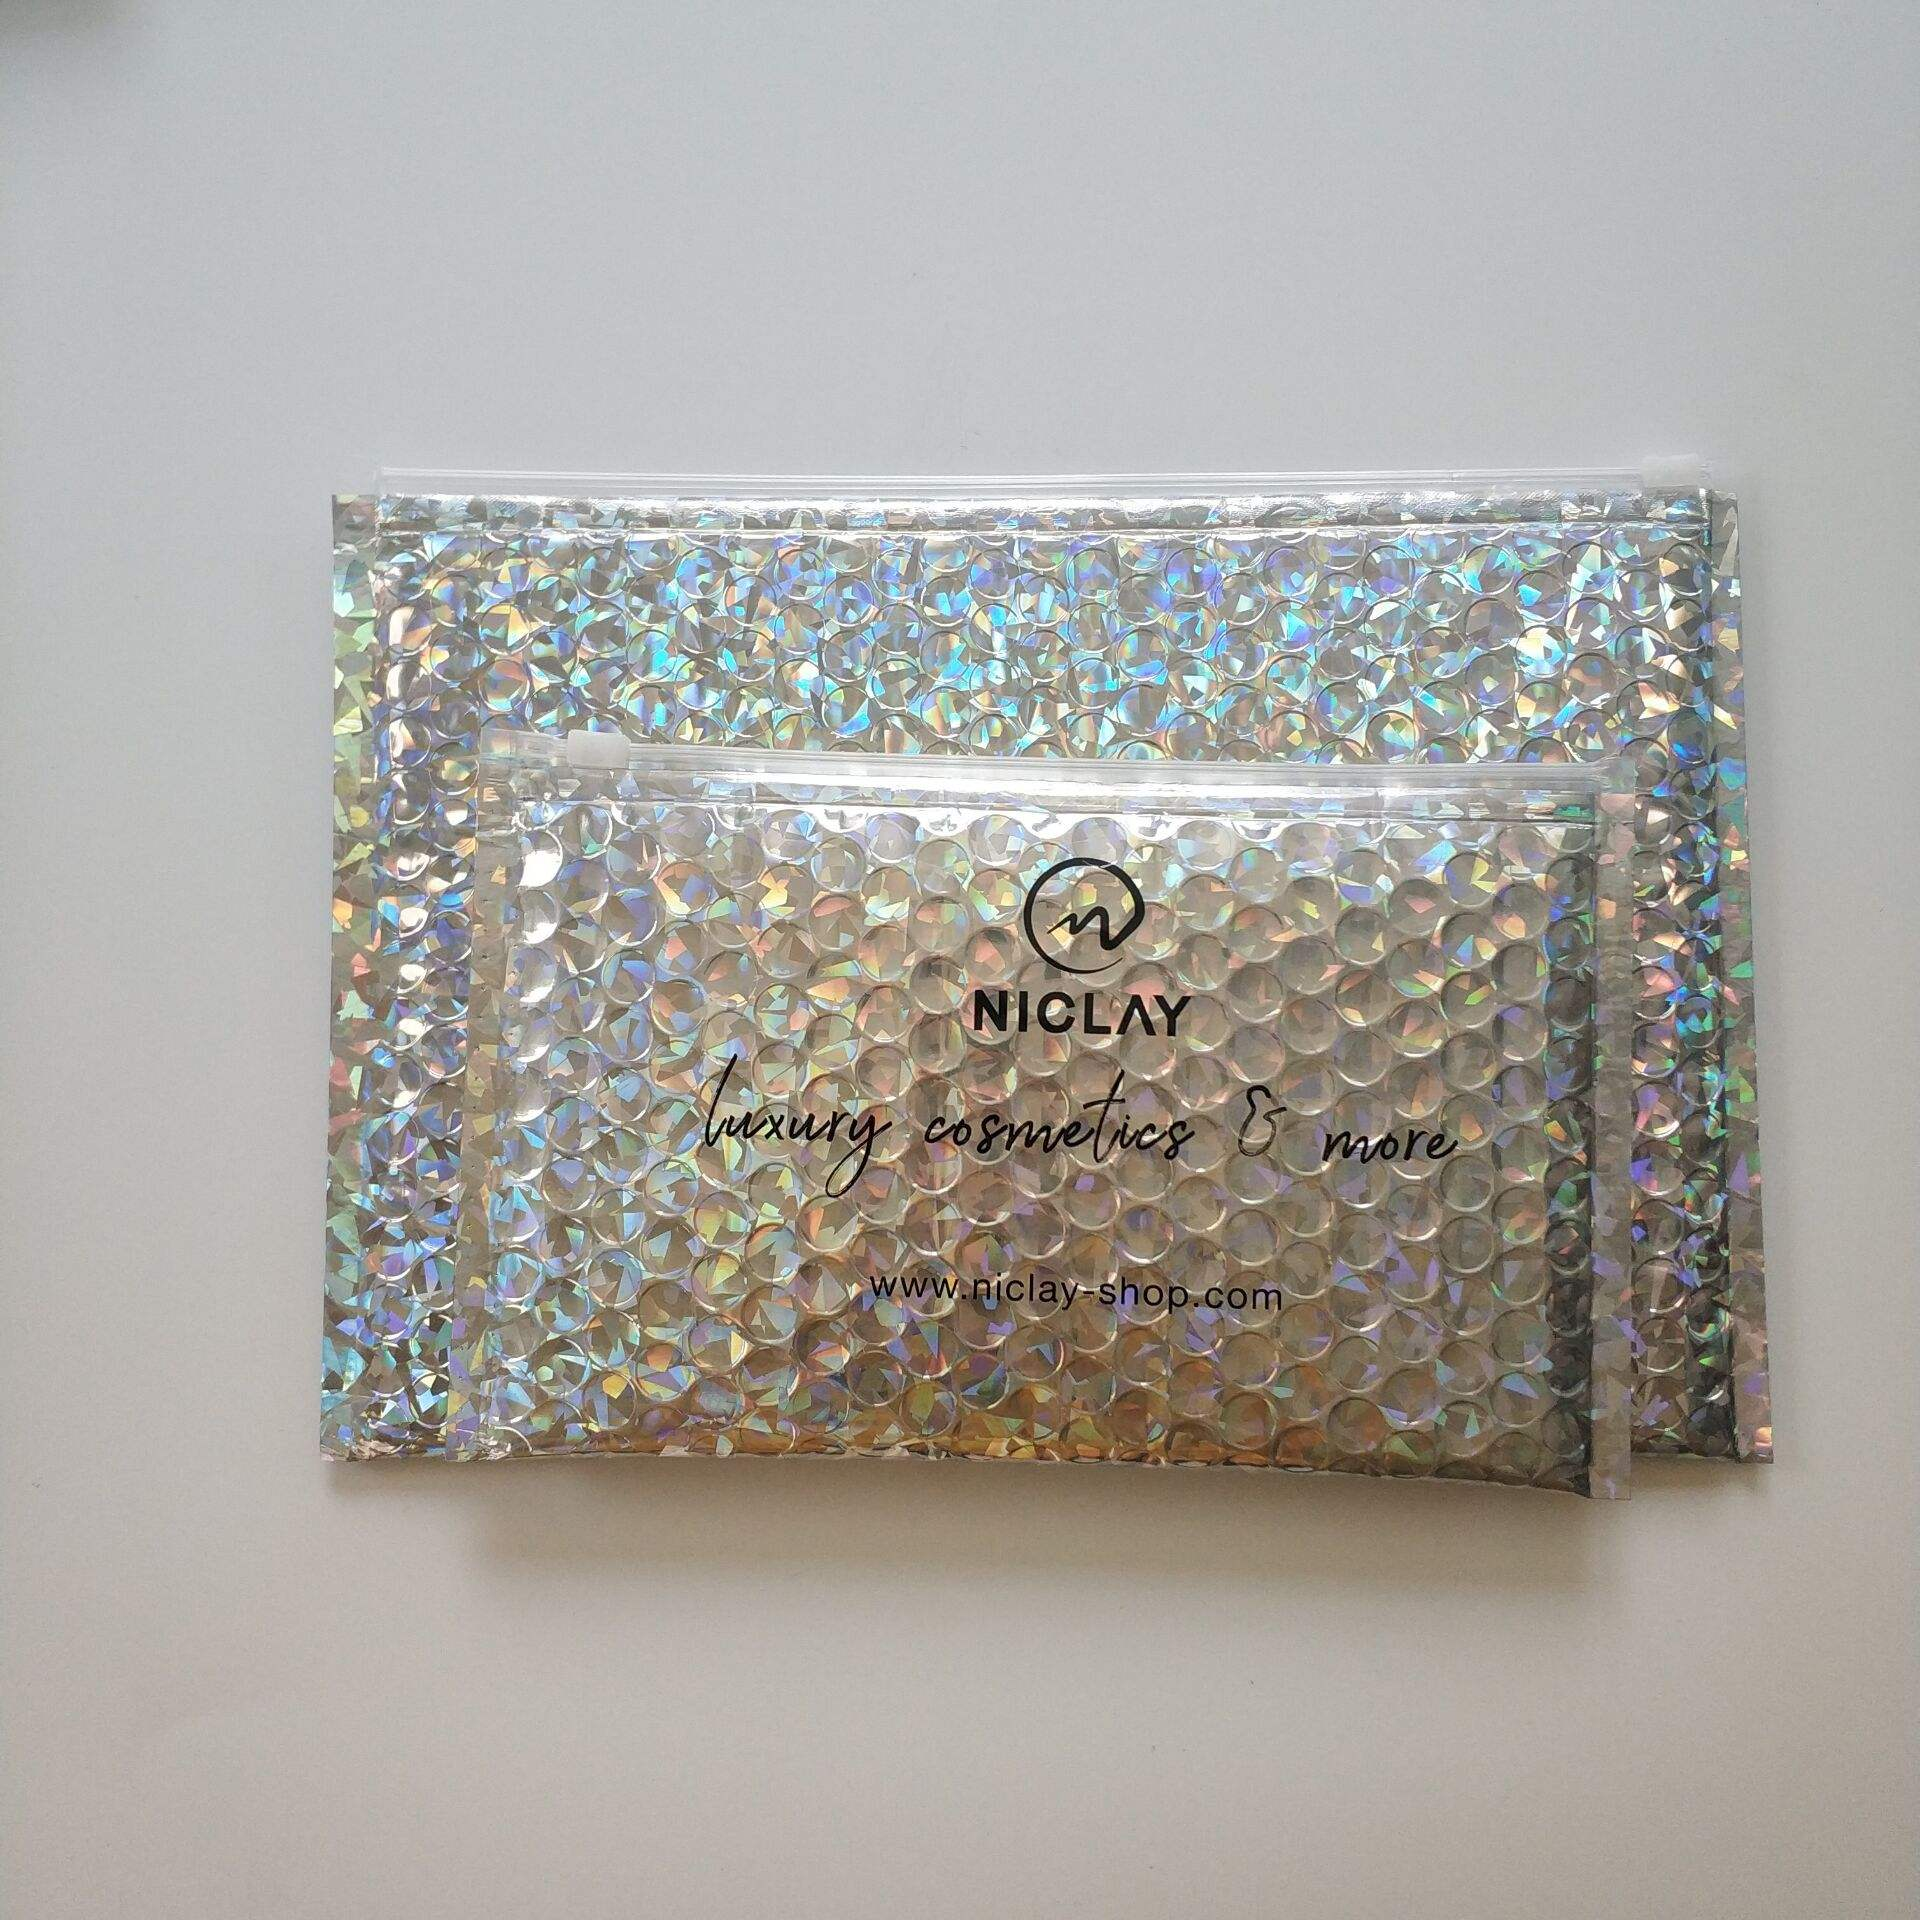 Shiny Recolsable Makeup Bubble Zipper Bag Large Slide Ziplock Pouch For Cosmetic